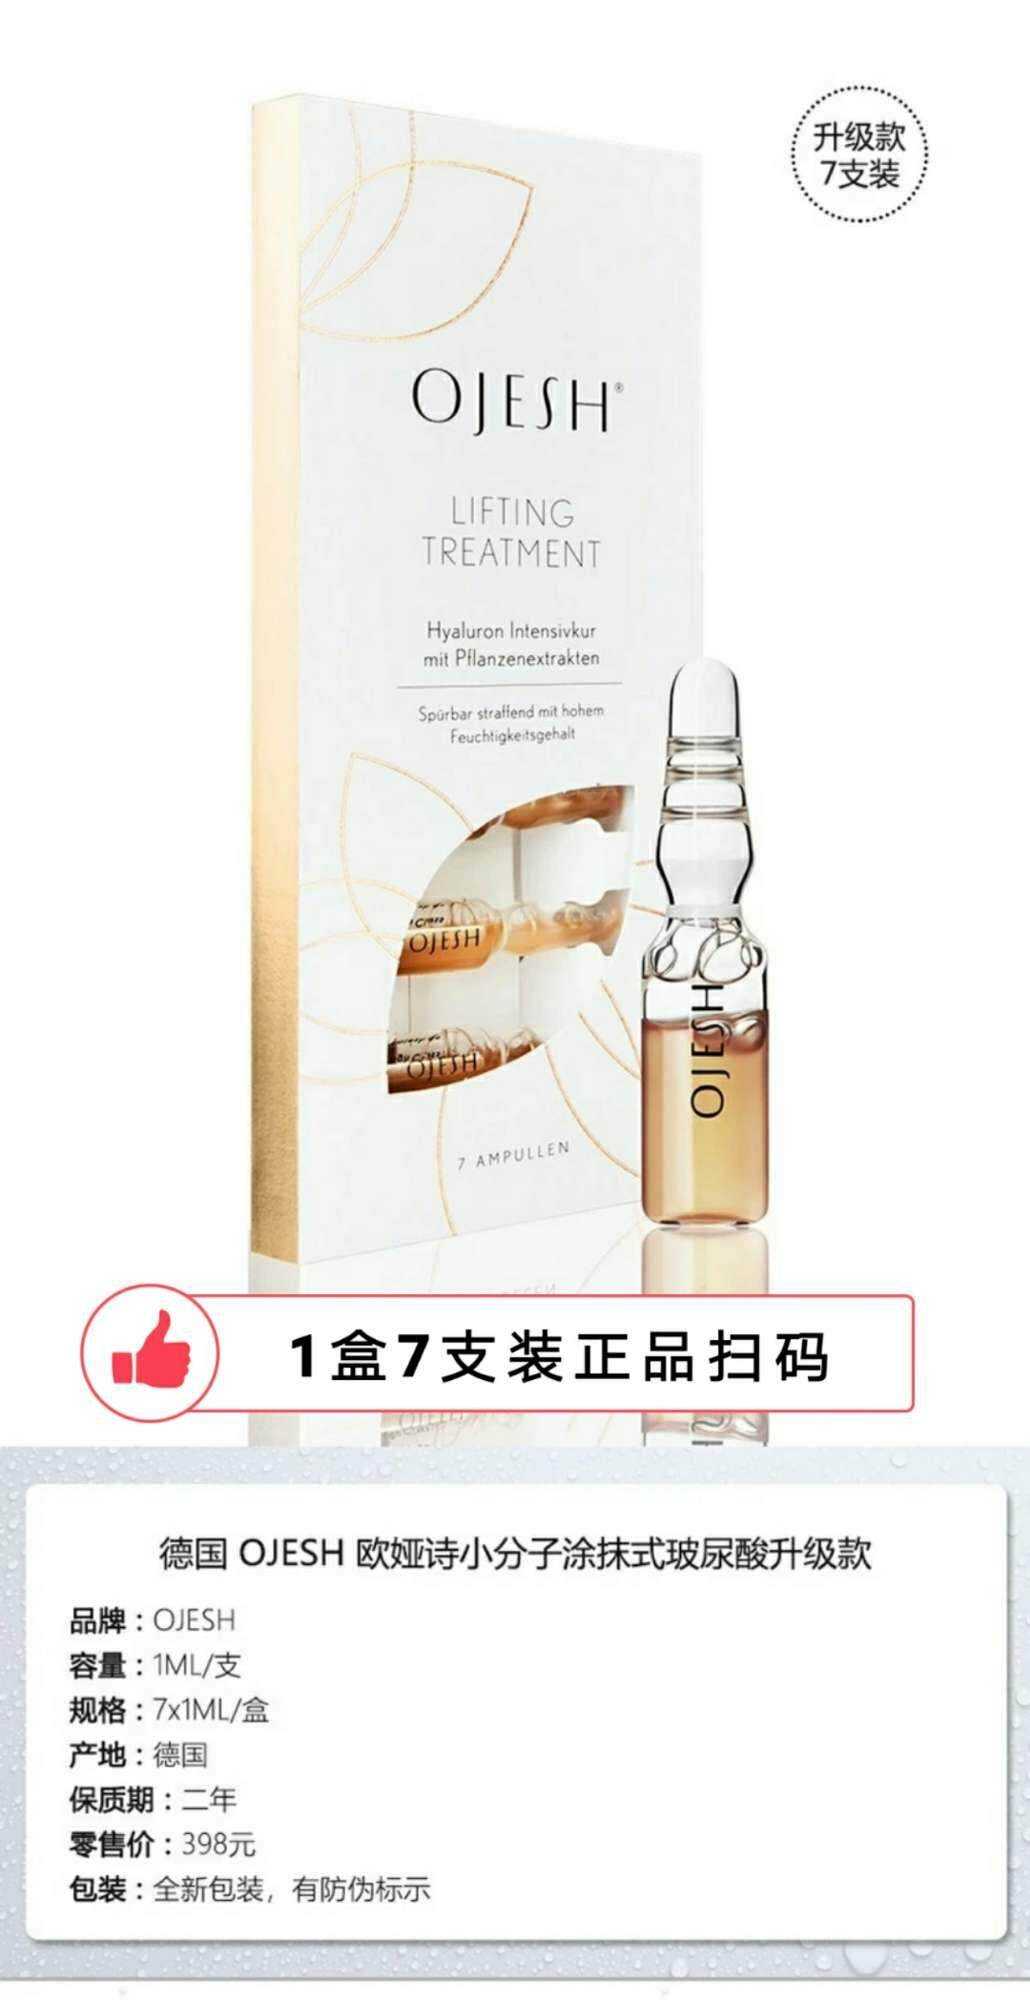 (Ready Stock 171) Ojesh Germany OJESH Lifting Treatment Serum Ampoules Hyaluronic Acid